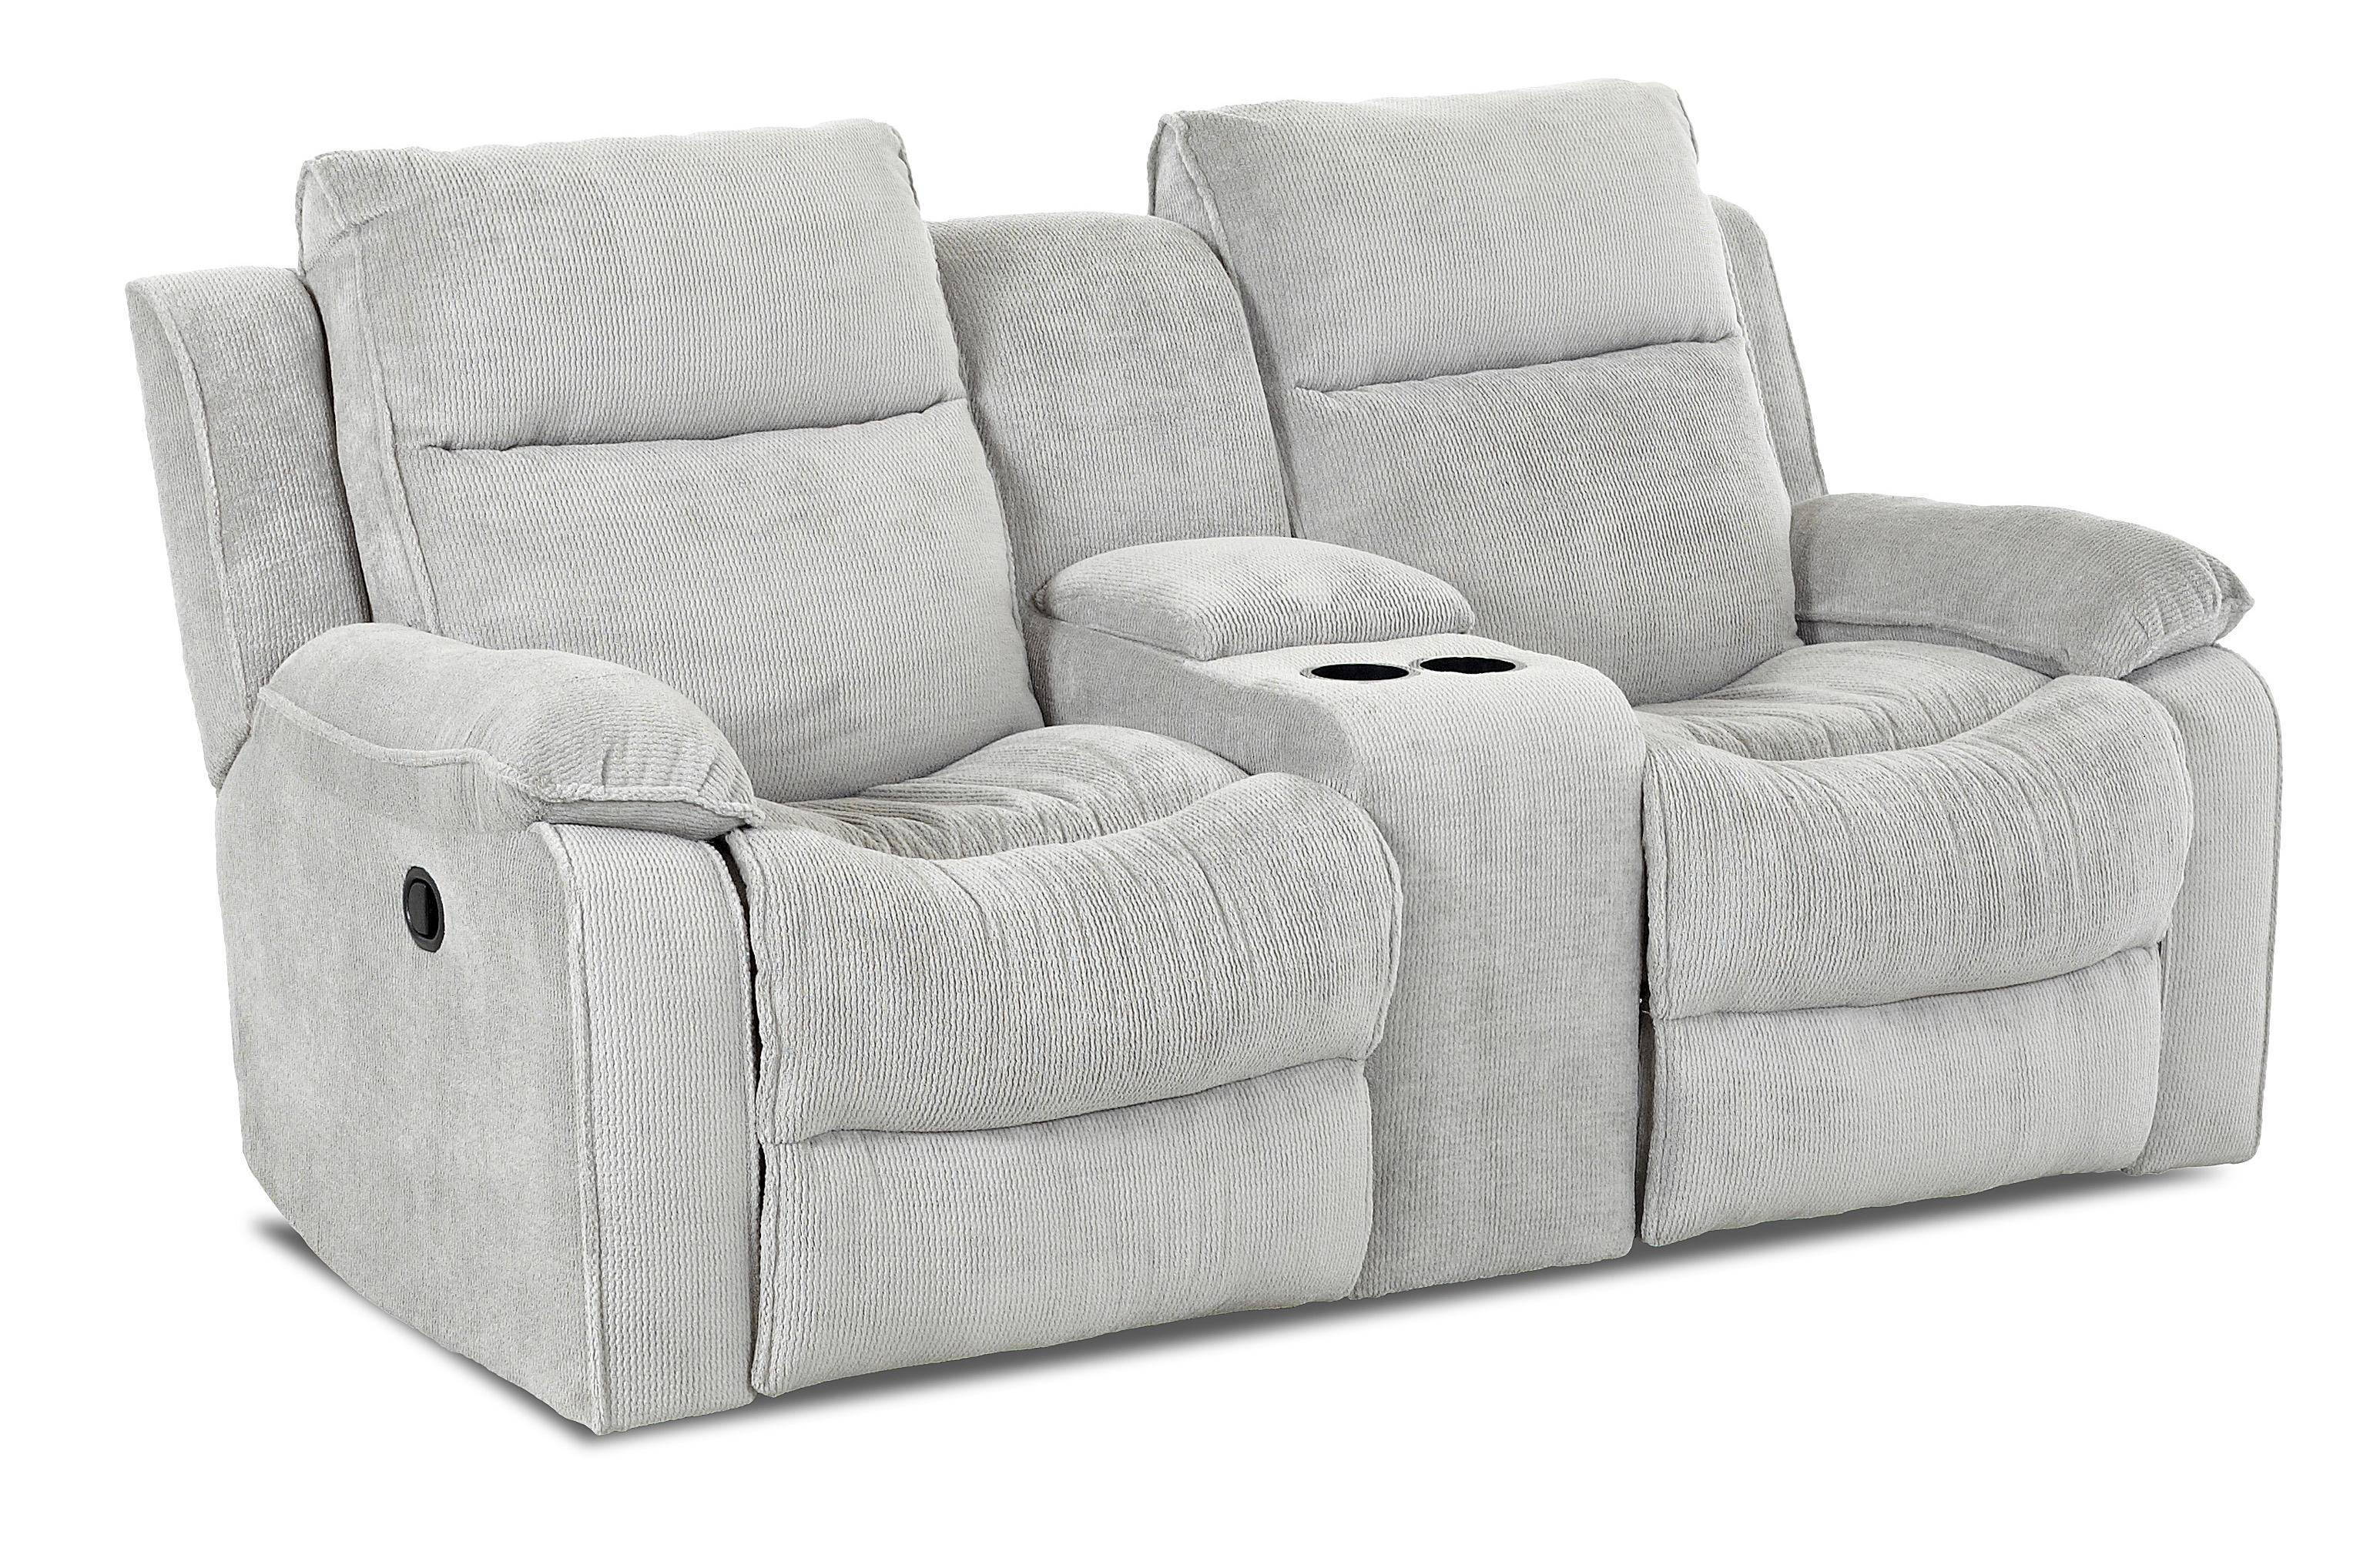 Castaway casual power reclining loveseat with console by klaussner wolf furniture Reclining loveseat with center console